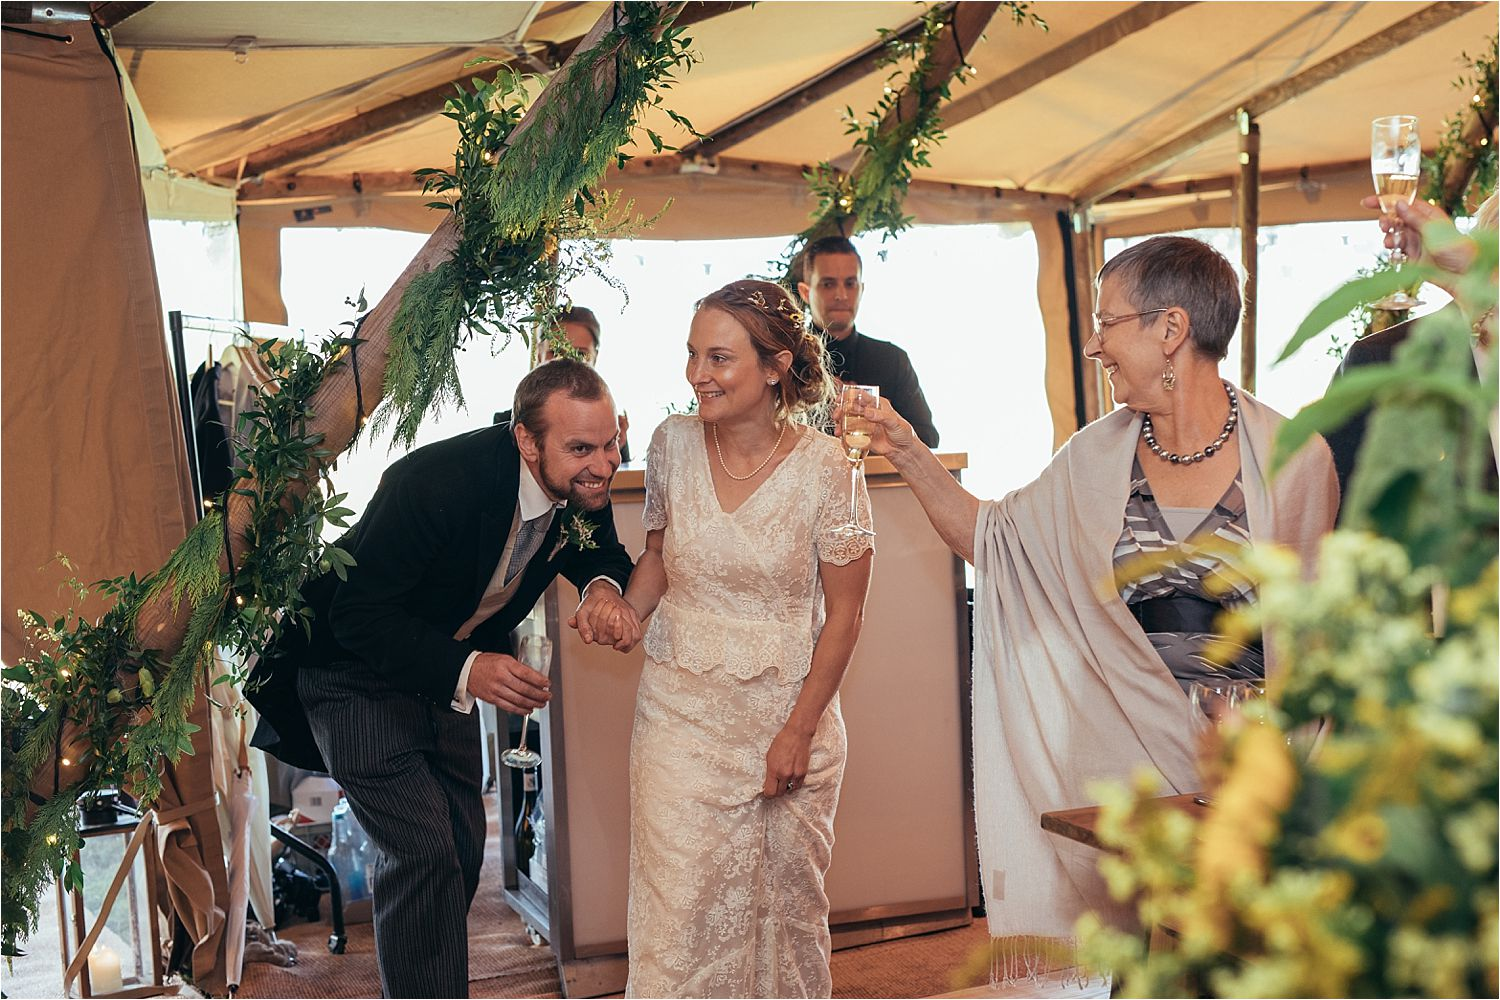 Guests raise a glass to bride and groom as they enter tipi wedding recepti. Tipis by Big Chief Tipis of Manchester